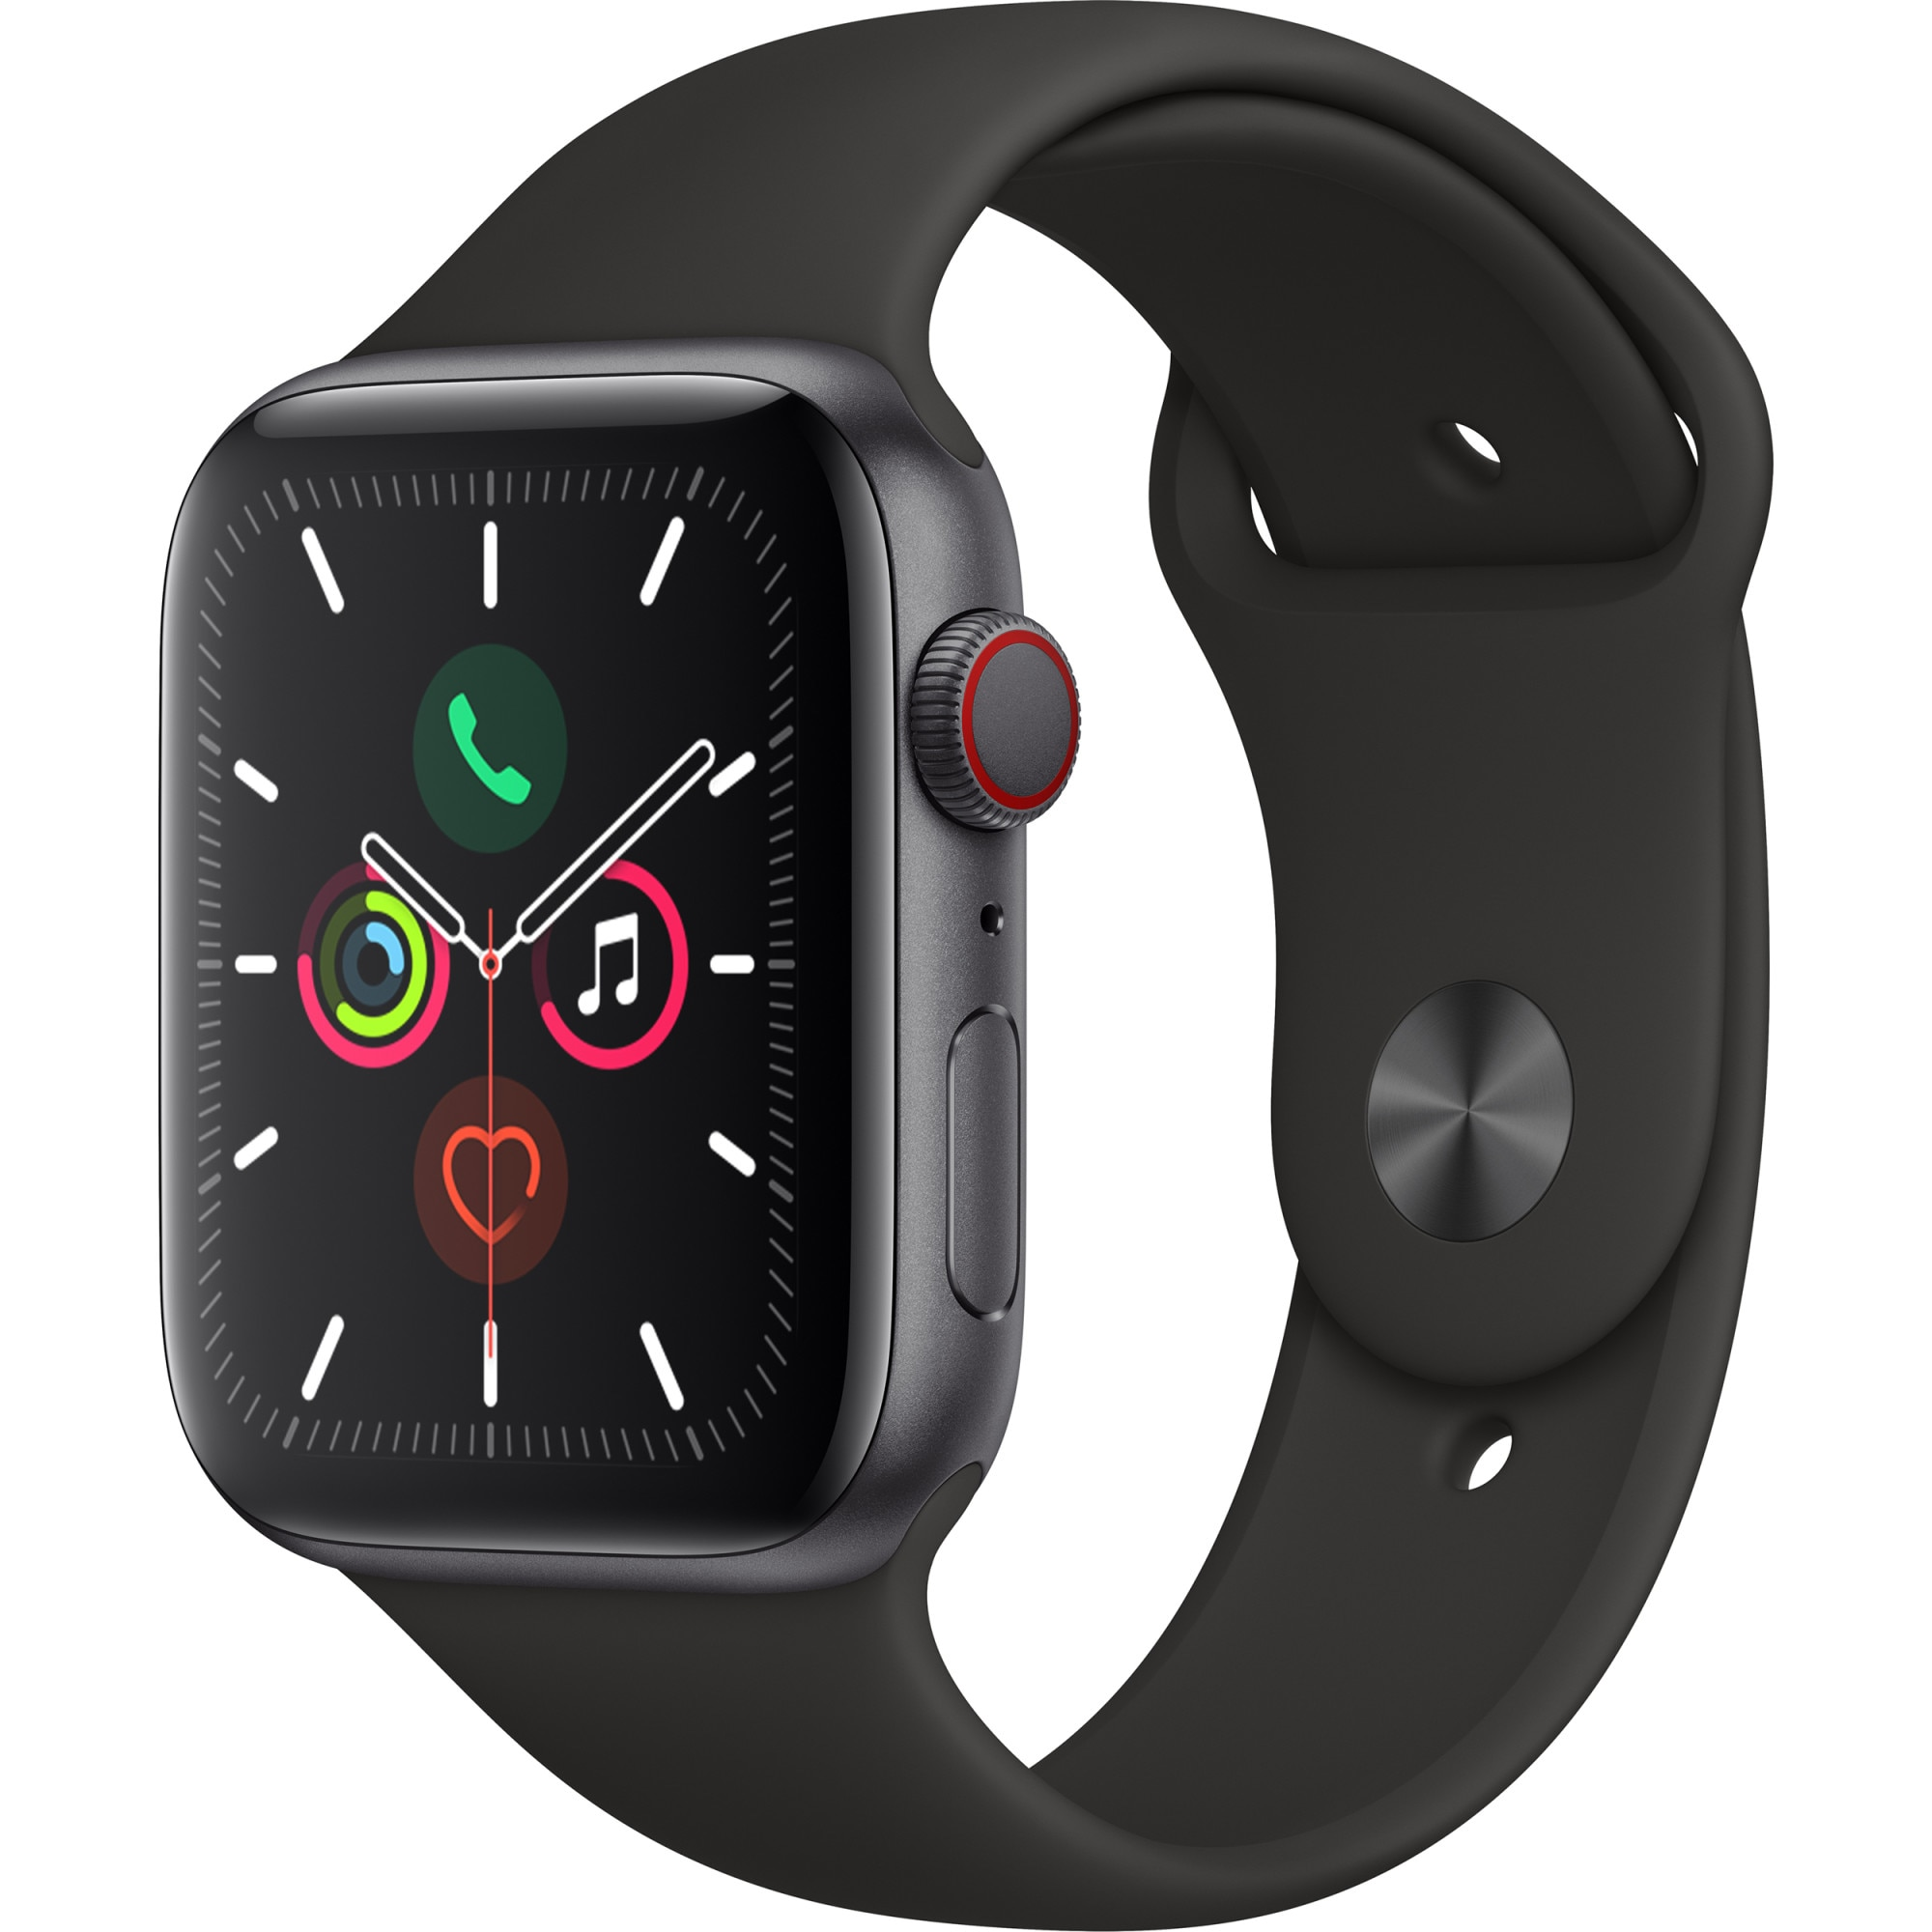 Fotografie Apple Watch 5, GPS, Cellular, Carcasa Space Grey Aluminium 44mm, Black Sport Band - S/M & M/L